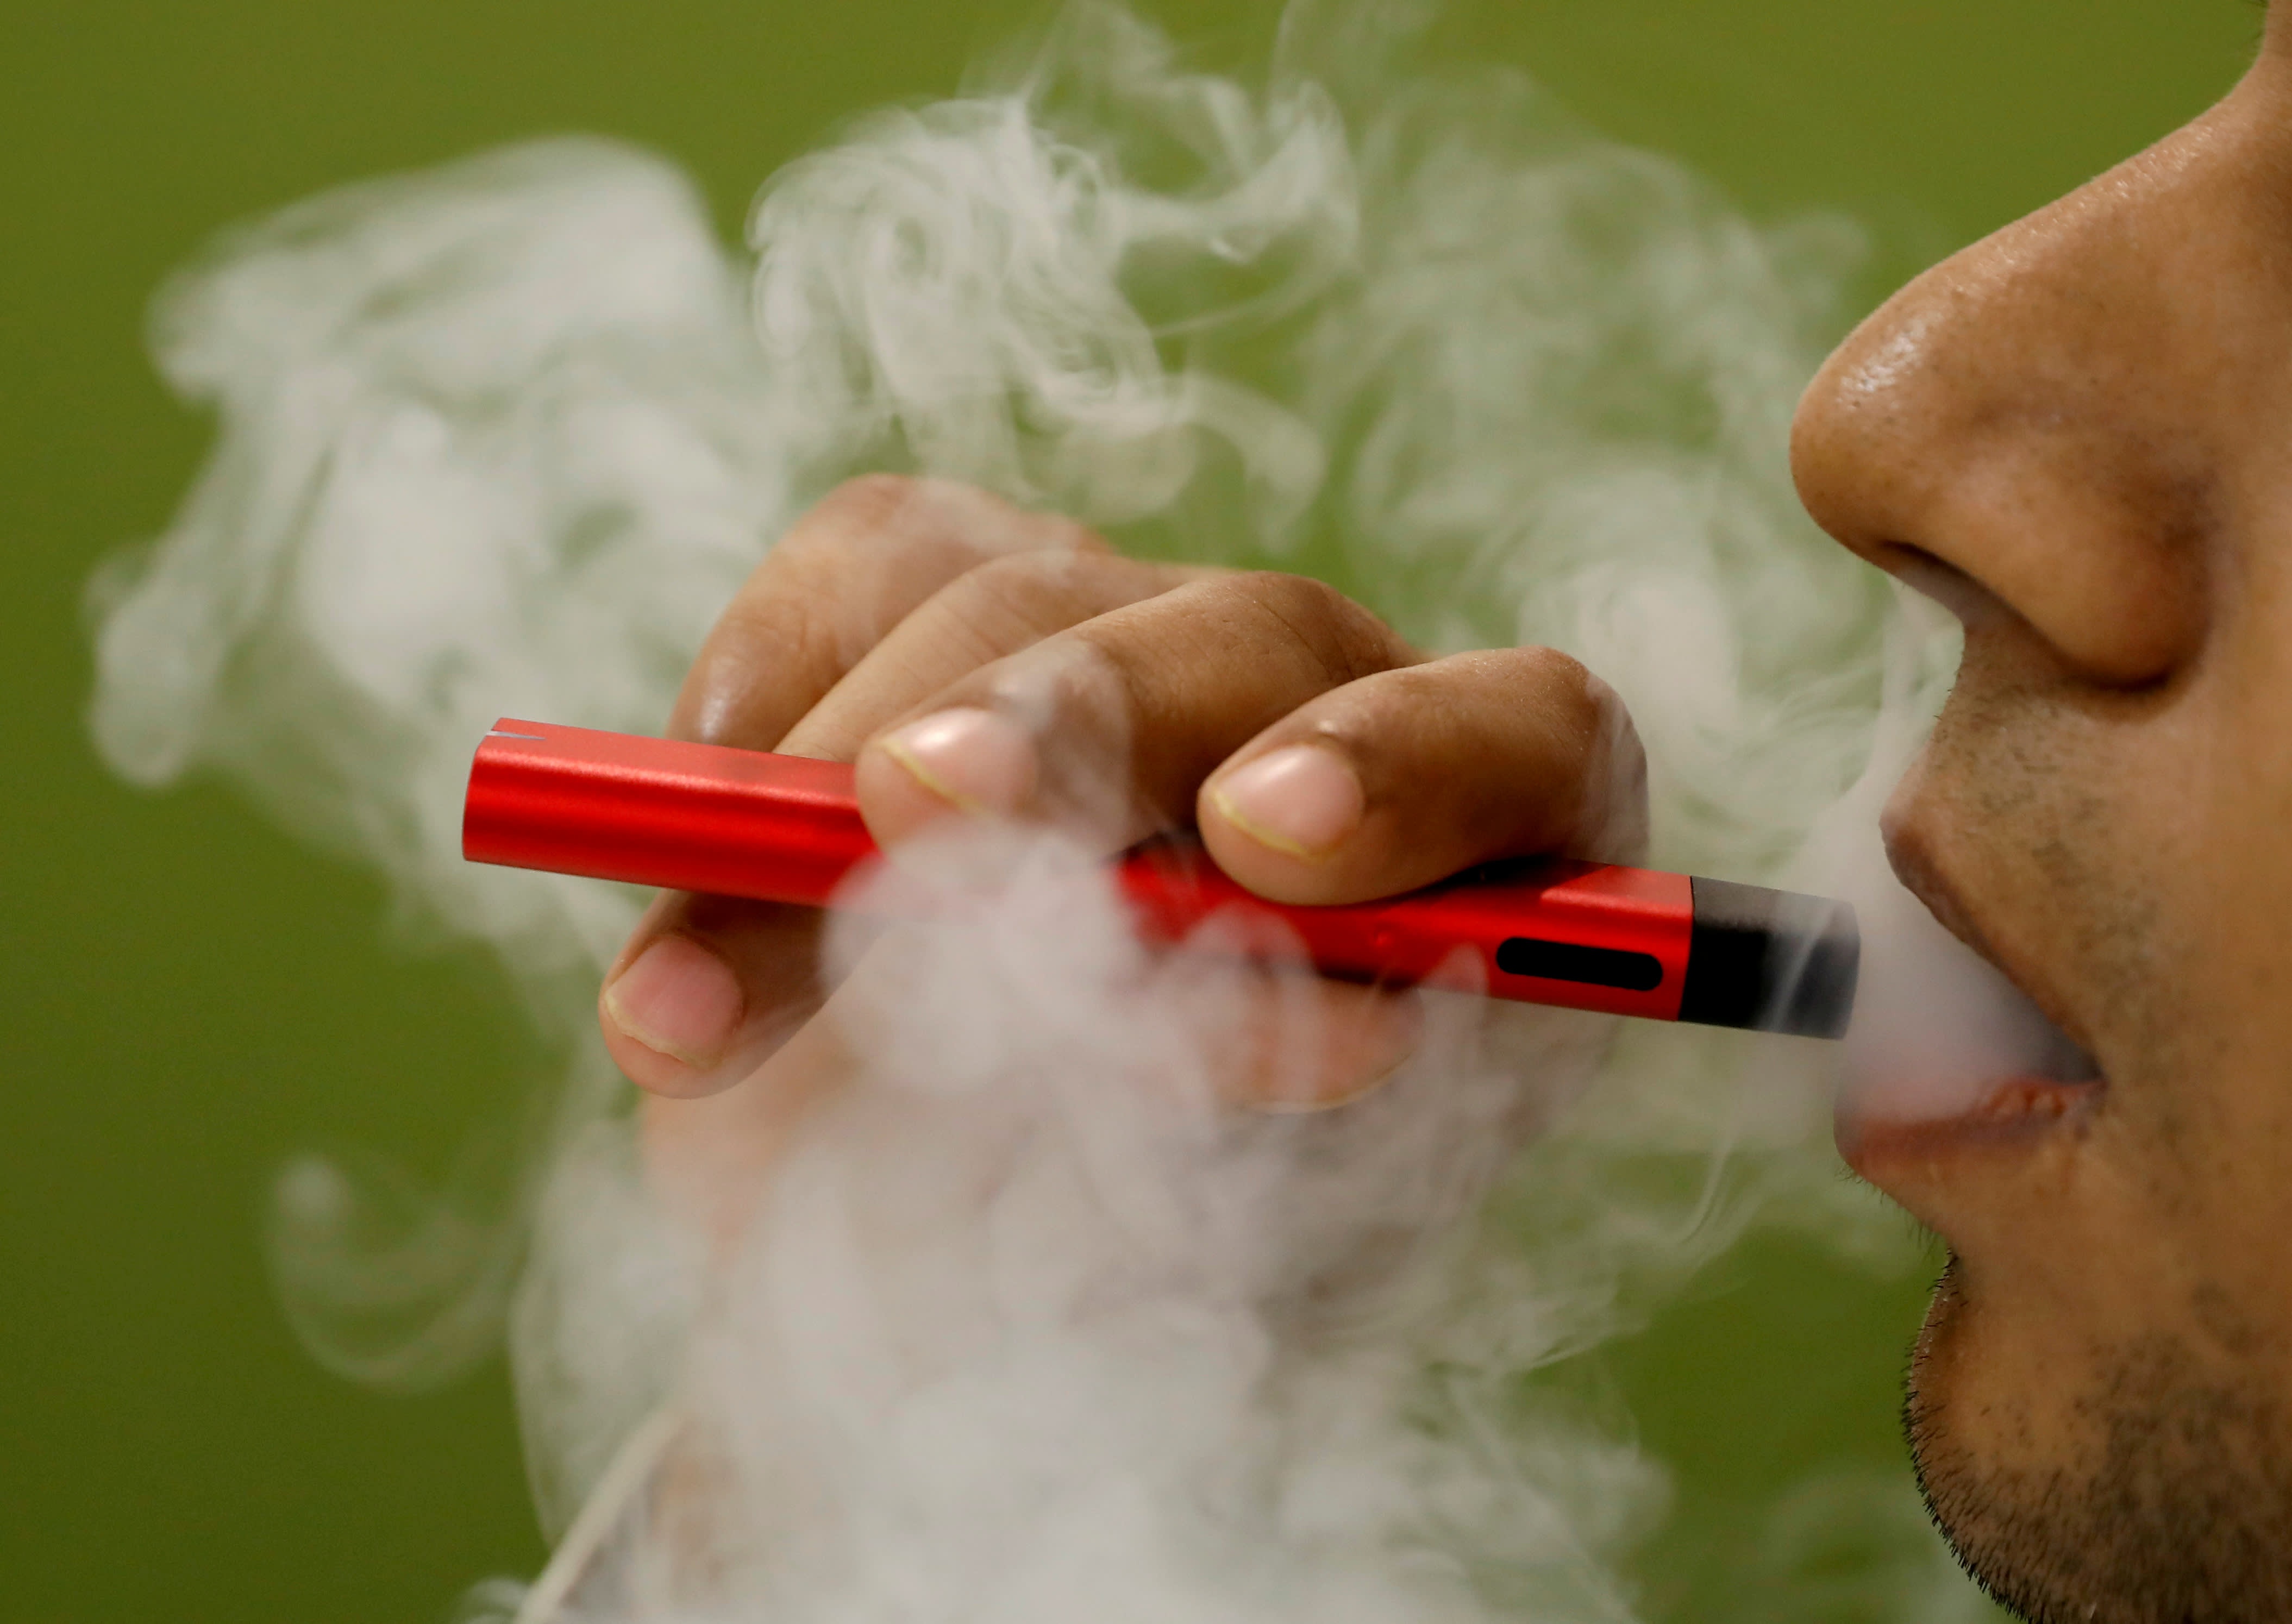 CDC says almost all vaping illness patients end up hospitalized